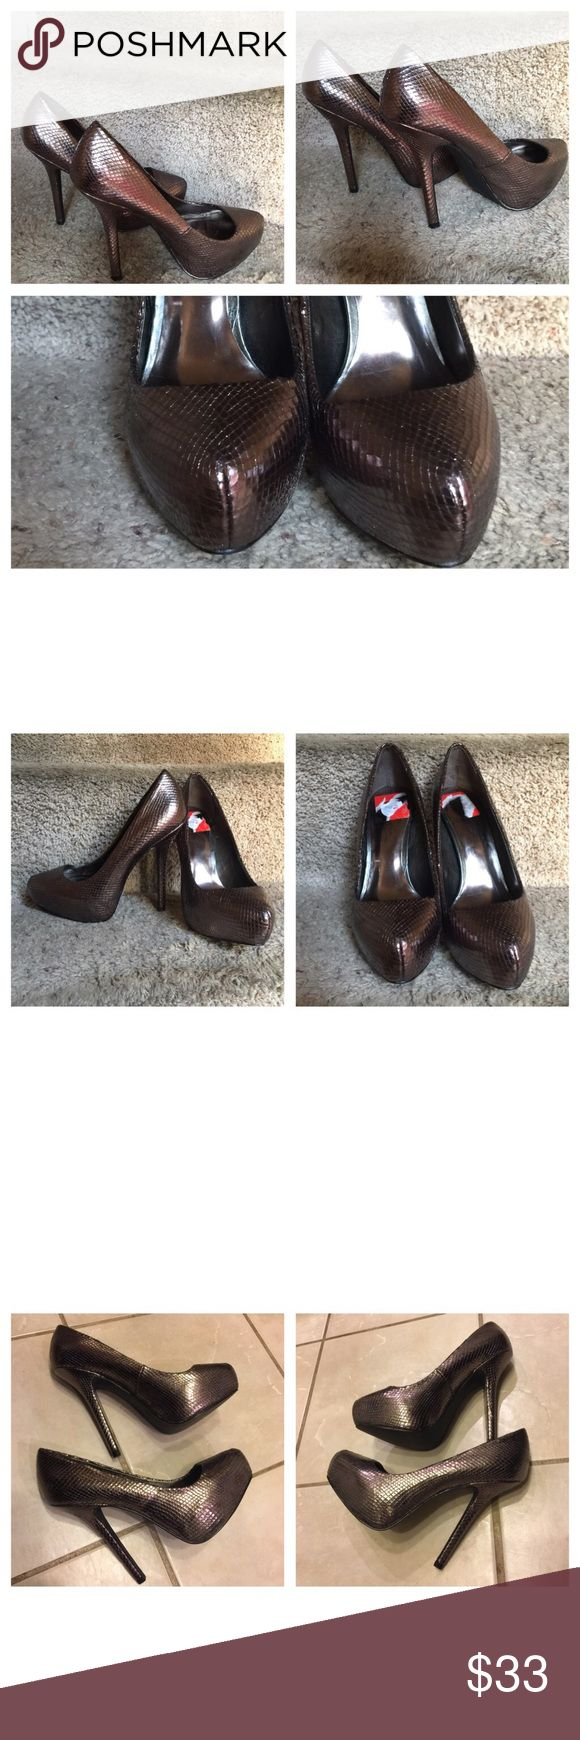 """Fertile Bunny pumps Bronze Shoes 👠 Preowned Fergie Bunny Pump Bronze Women's shoes 👠. Size 7M with about 5"""" Heel. Like new and in great condition. No tag, no original 📦, no hold, no modeling,  and no Trade. Fergie Shoes Heels"""